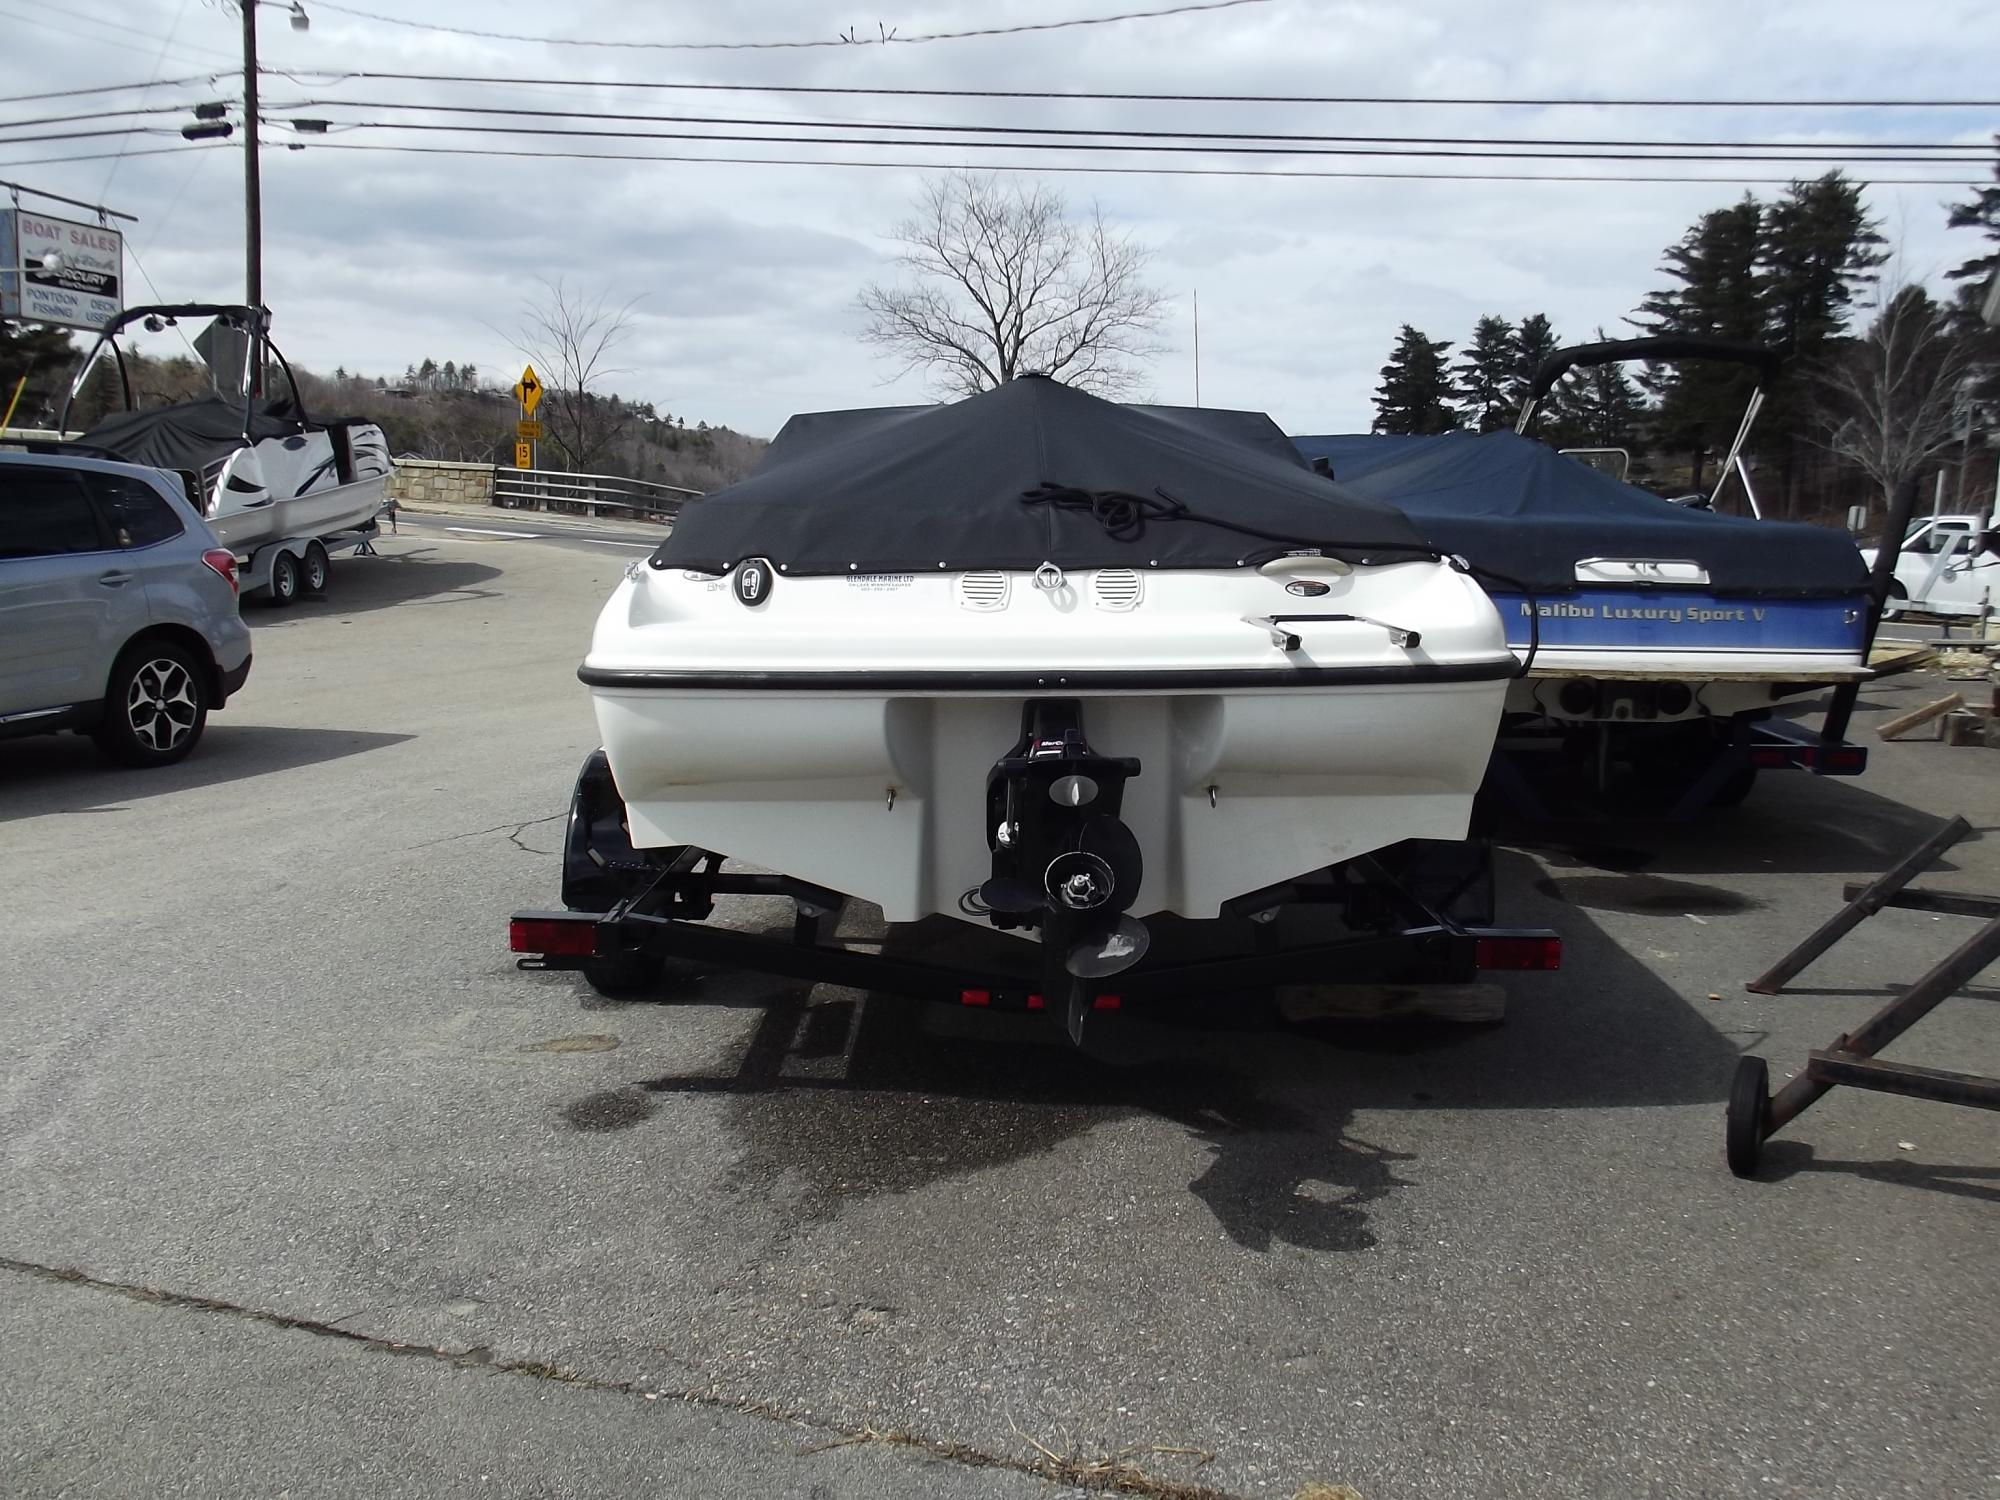 Bayliner_175_on_blk_trailer_004.JPG